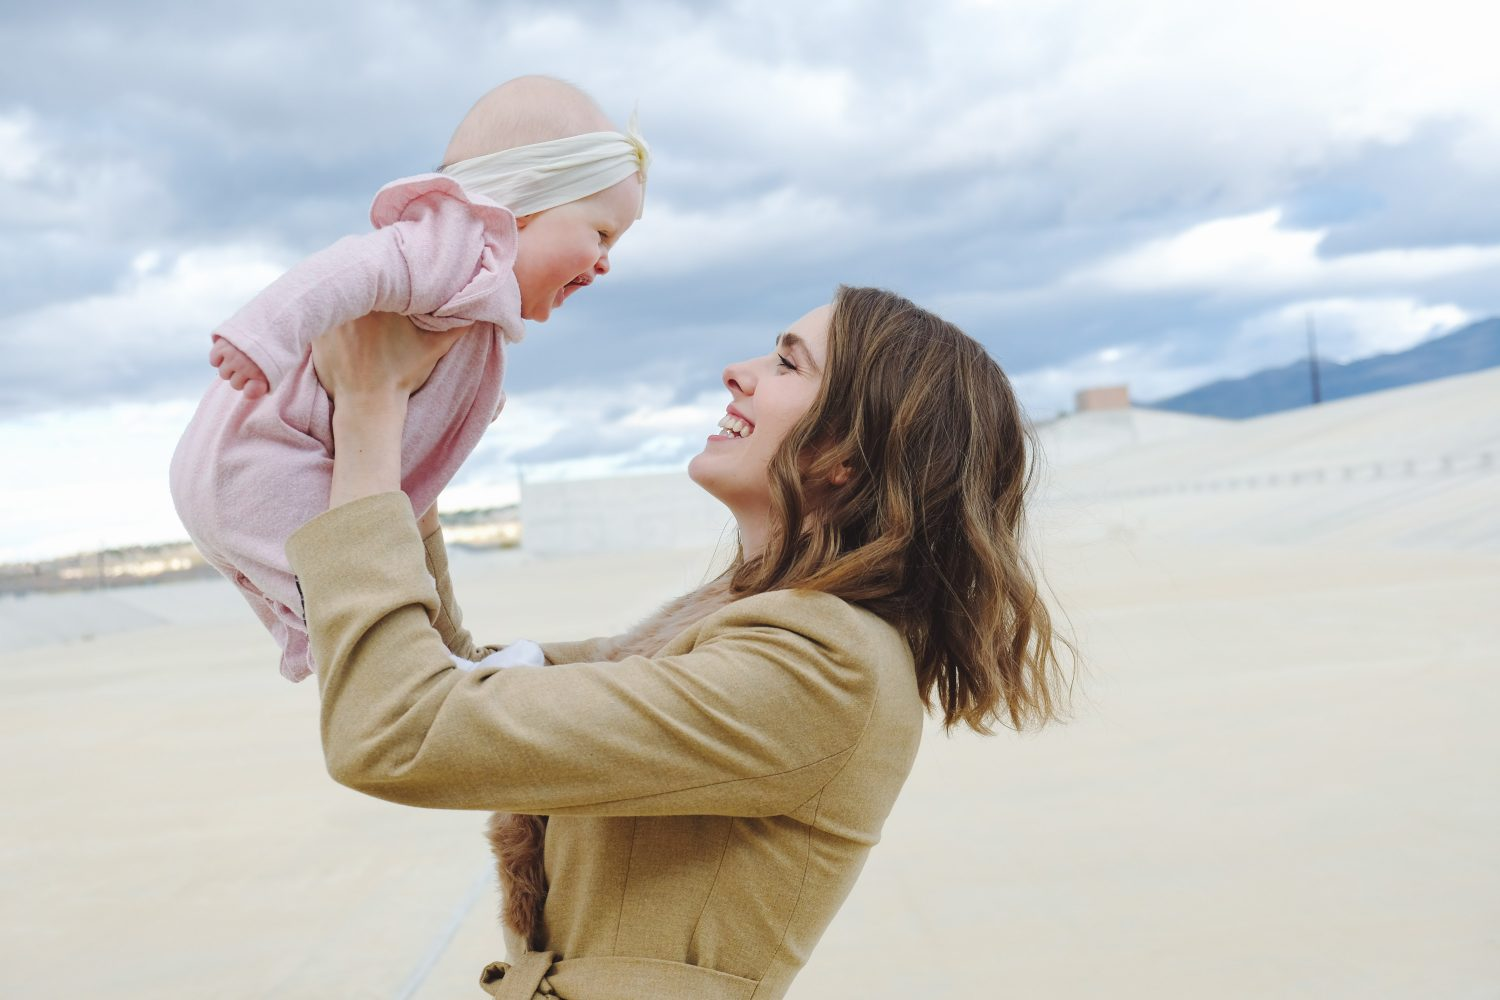 dial m for mum? mom? mama? oh, i get it – the casual erosion of a woman's identity – motherhood